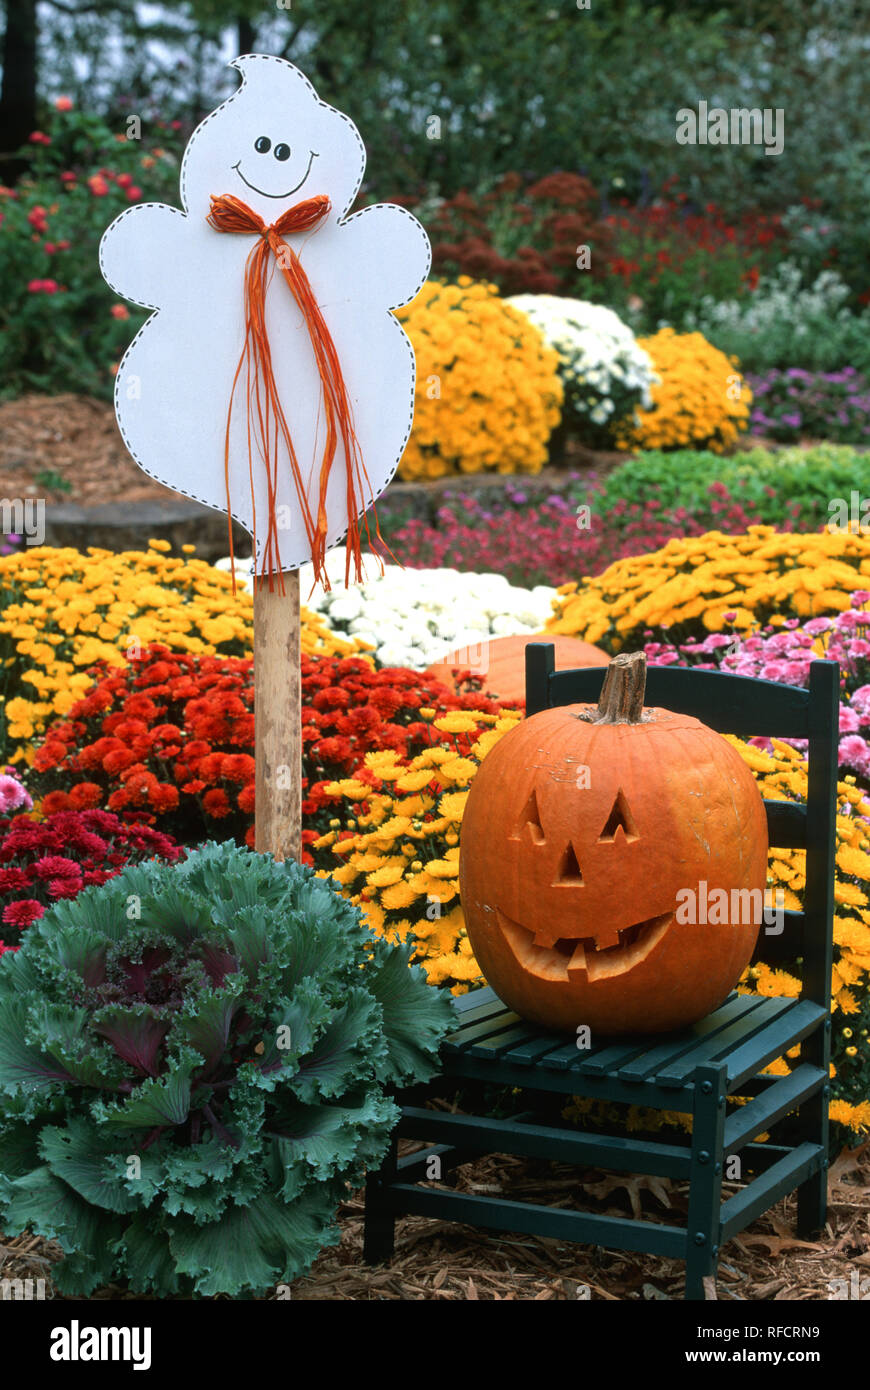 63821 120 15 Halloween Garden Display Ghost Jack O Lantern On Green Chair Ornamental Kale Mums Marion Co Il Stock Photo Alamy